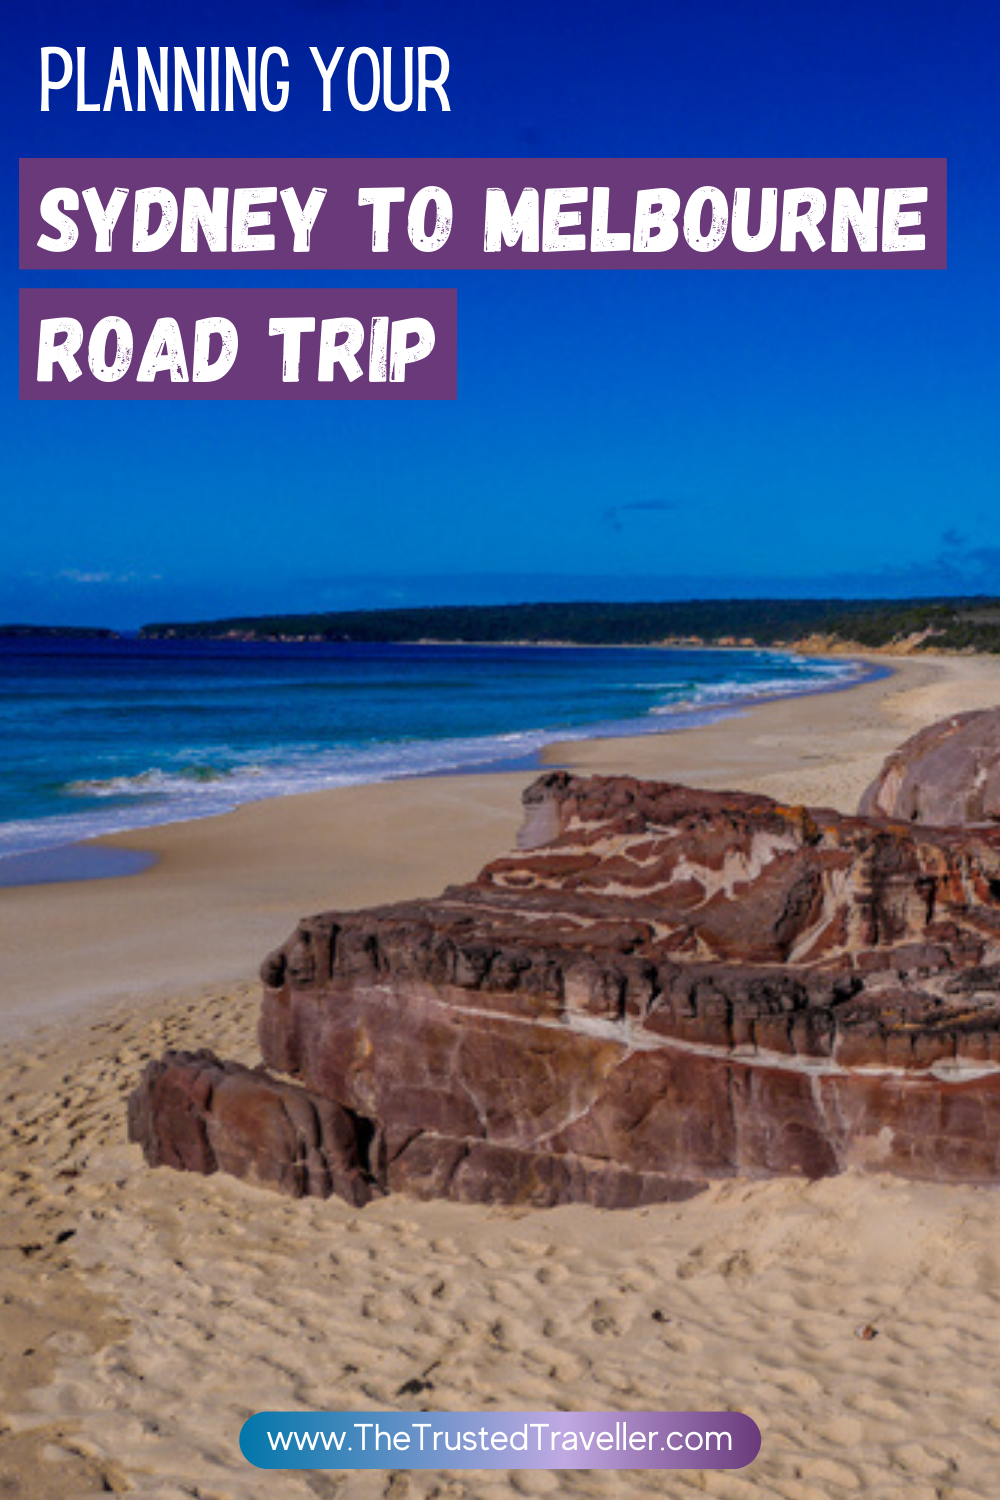 Two Week Sydney to Melbourne Road Trip Itinerary - The Trusted Traveller